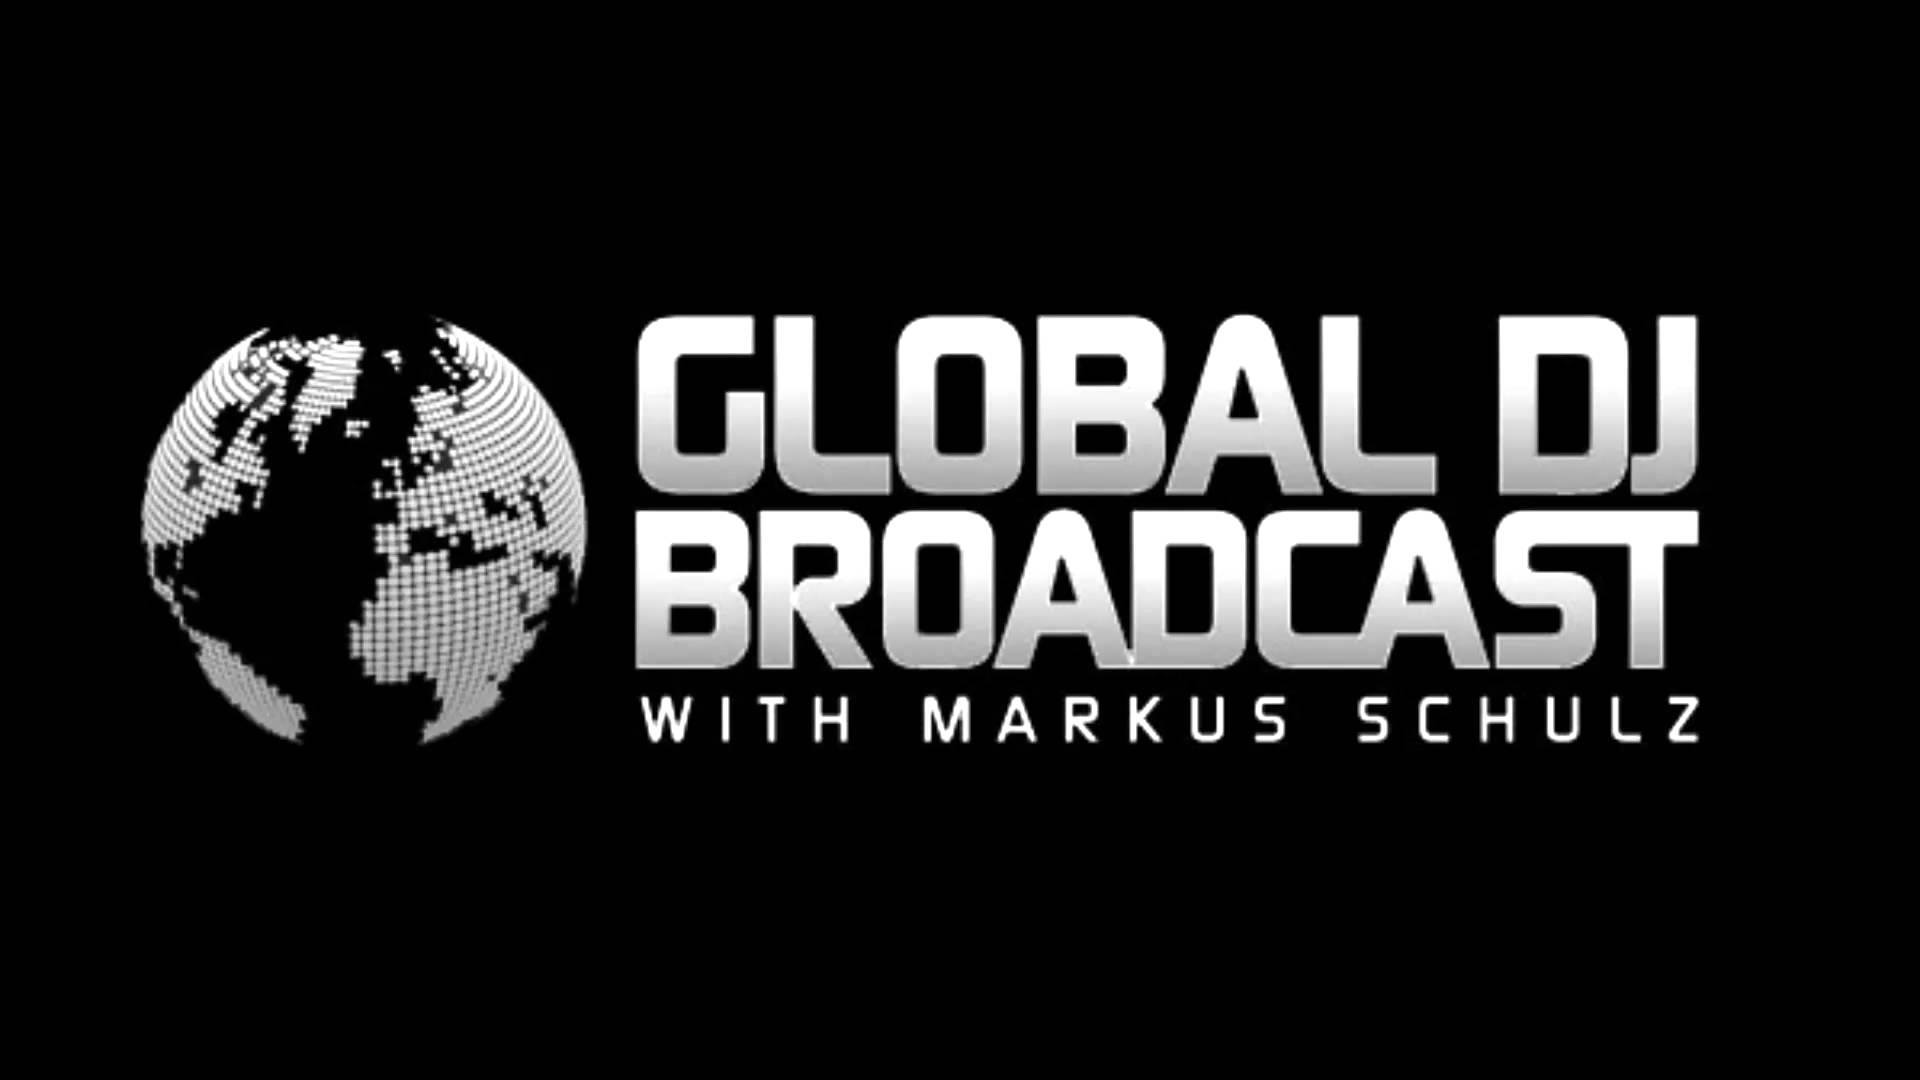 Markus Schulz - Global DJ Broadcast - 12-Oct-2017